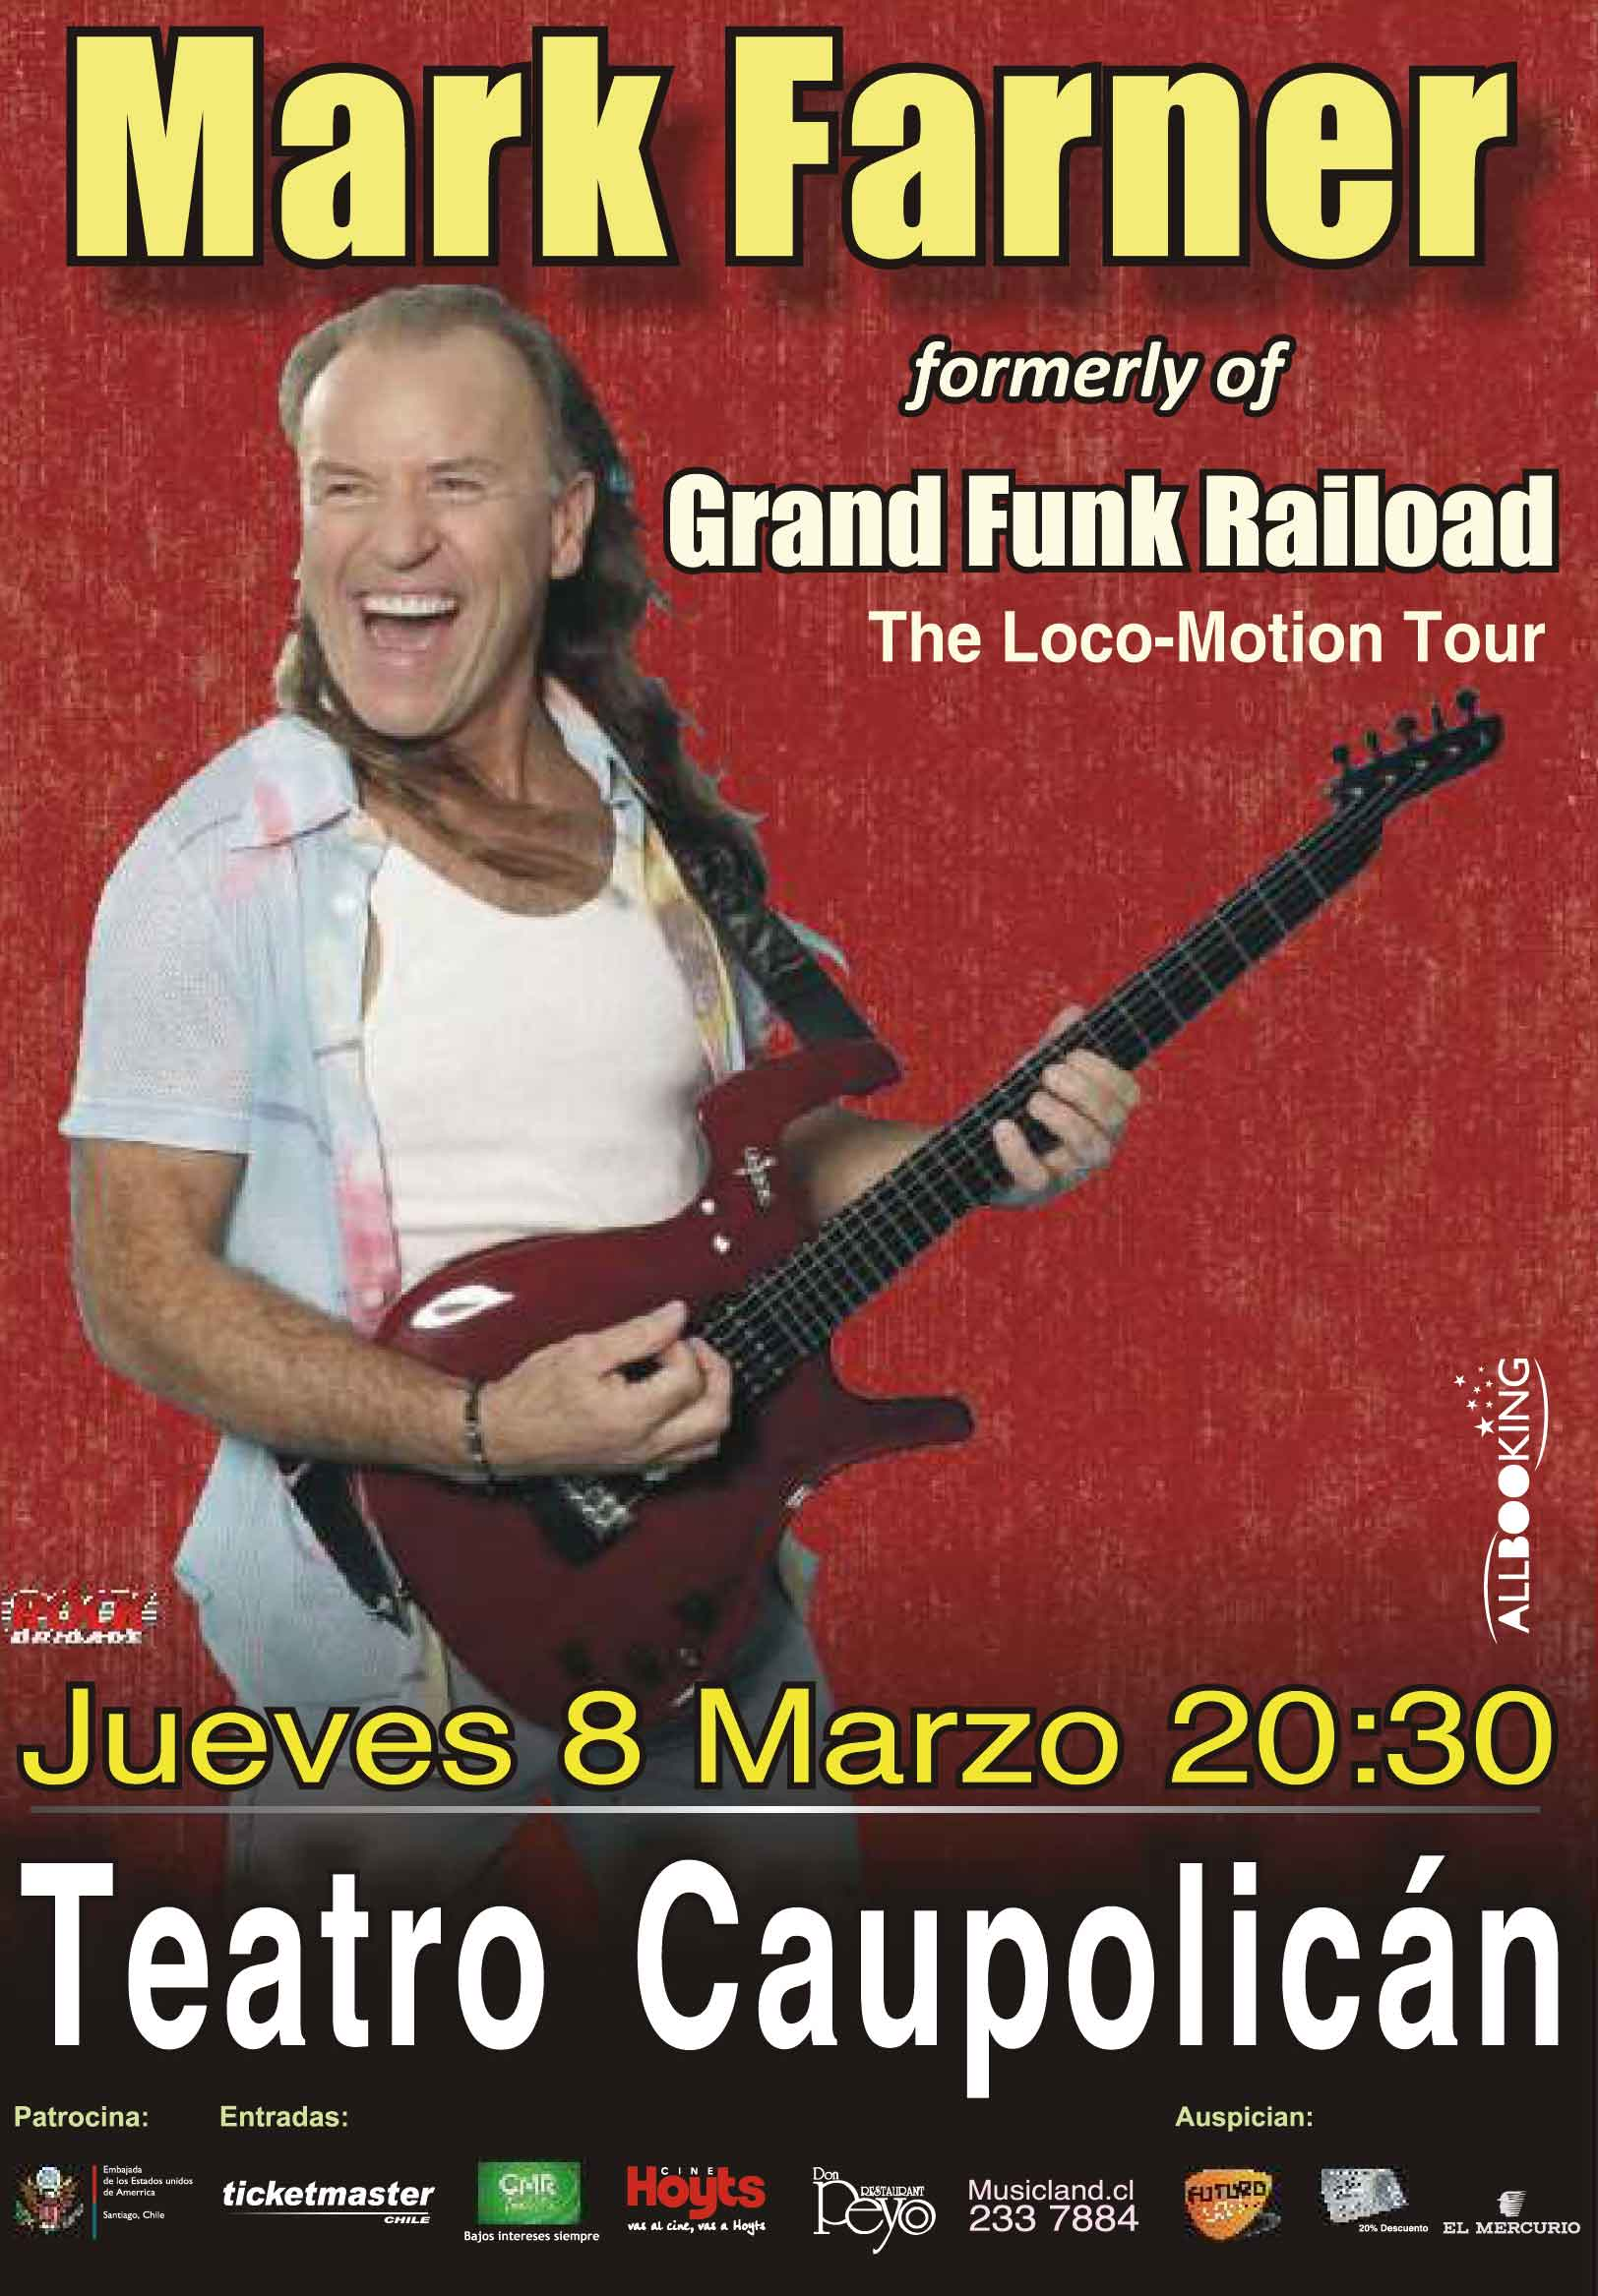 Mark Farner viene a Chile a revivir los más grandes éxitos de Grand Funk Railroad